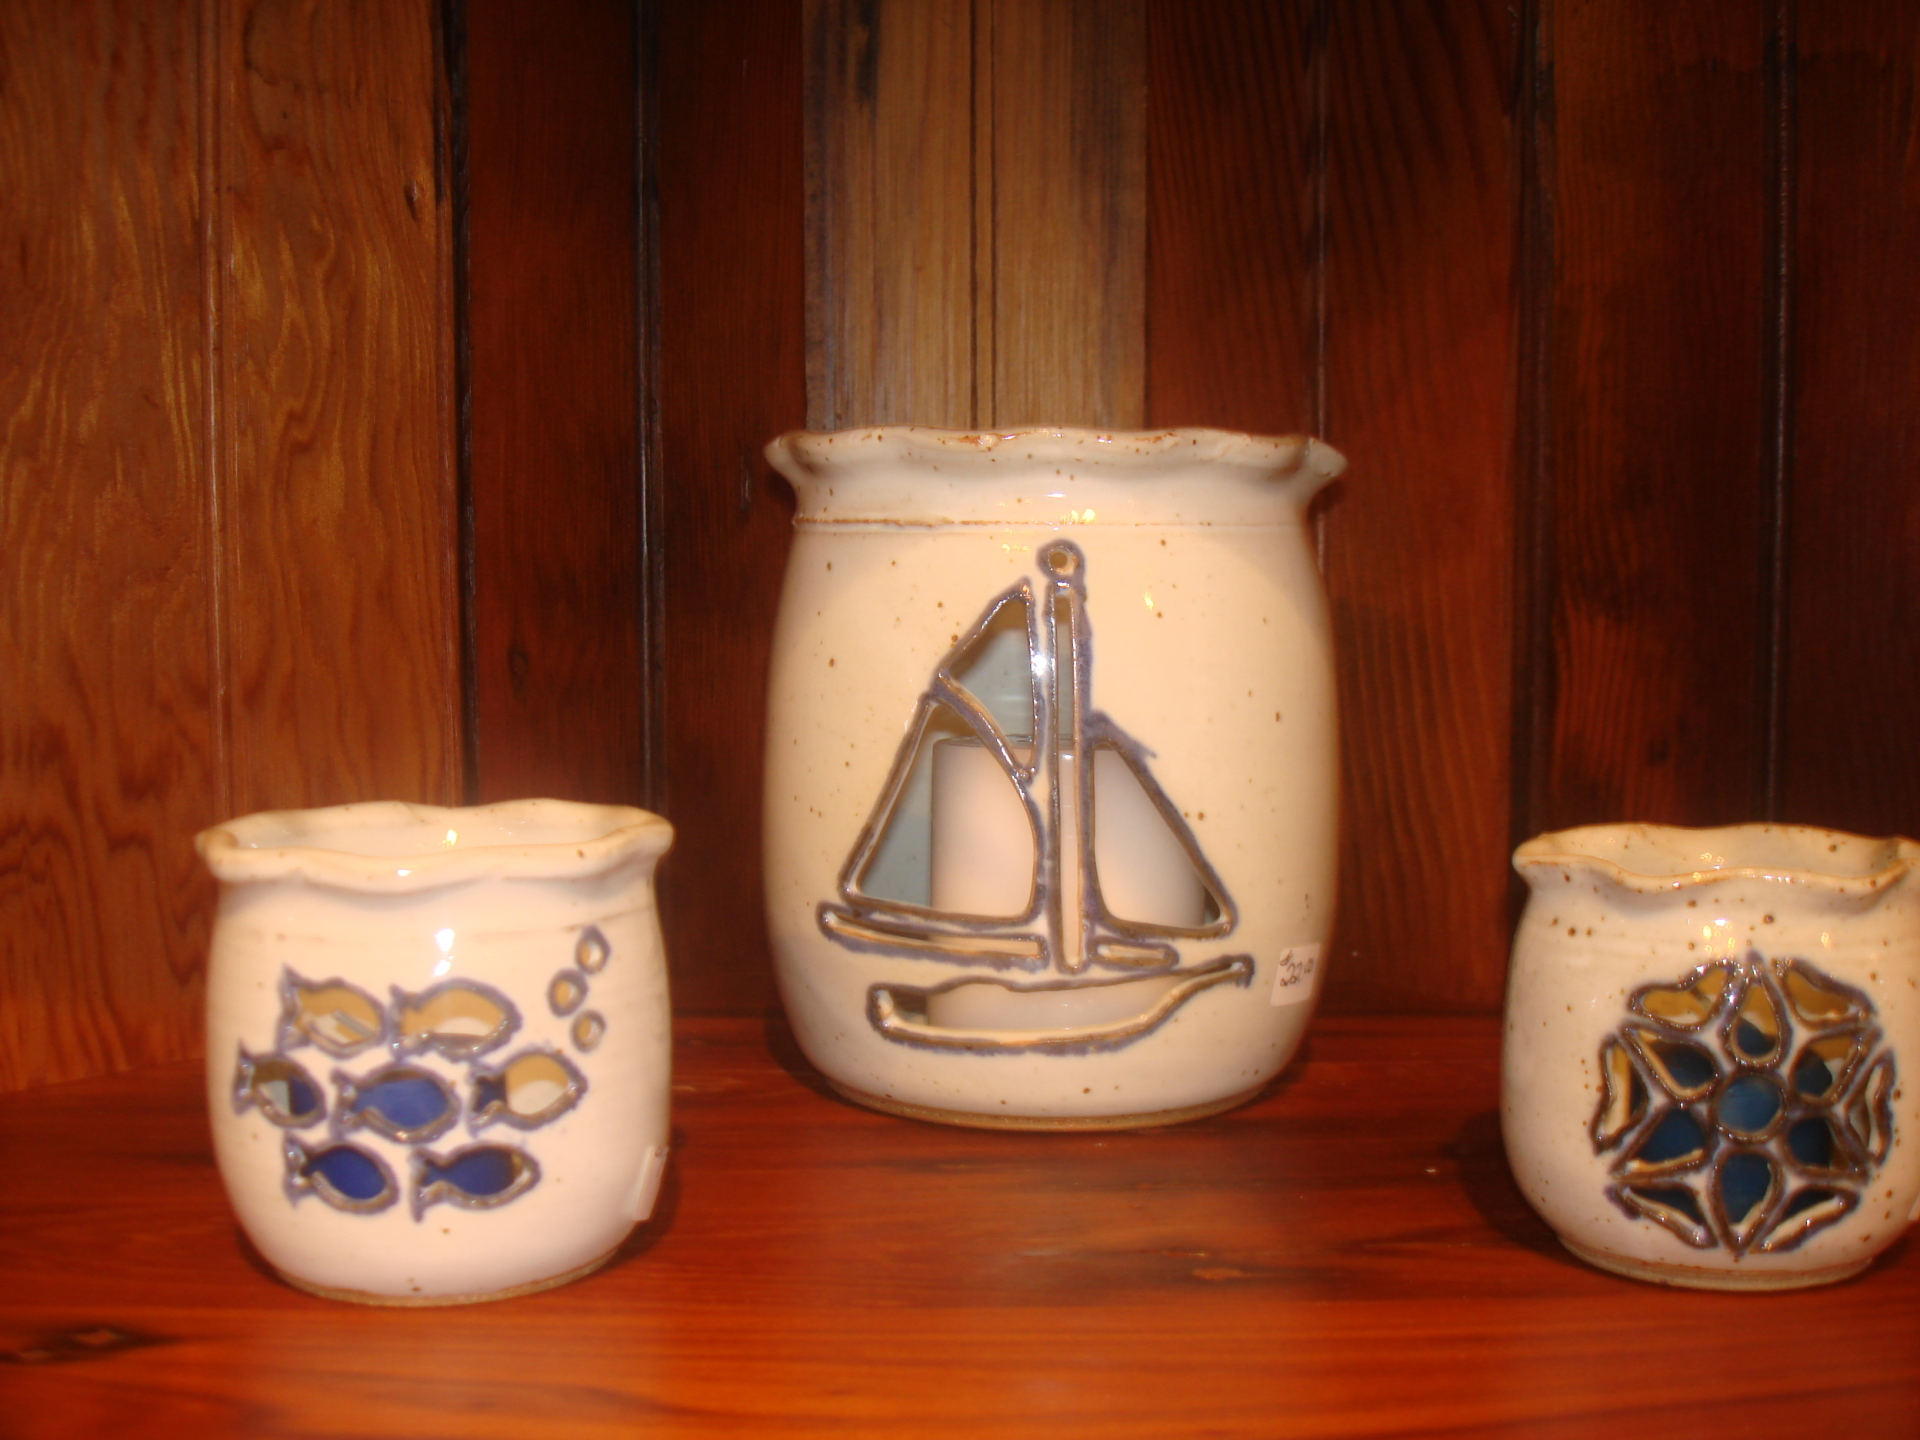 Nautical cut-out candle holders